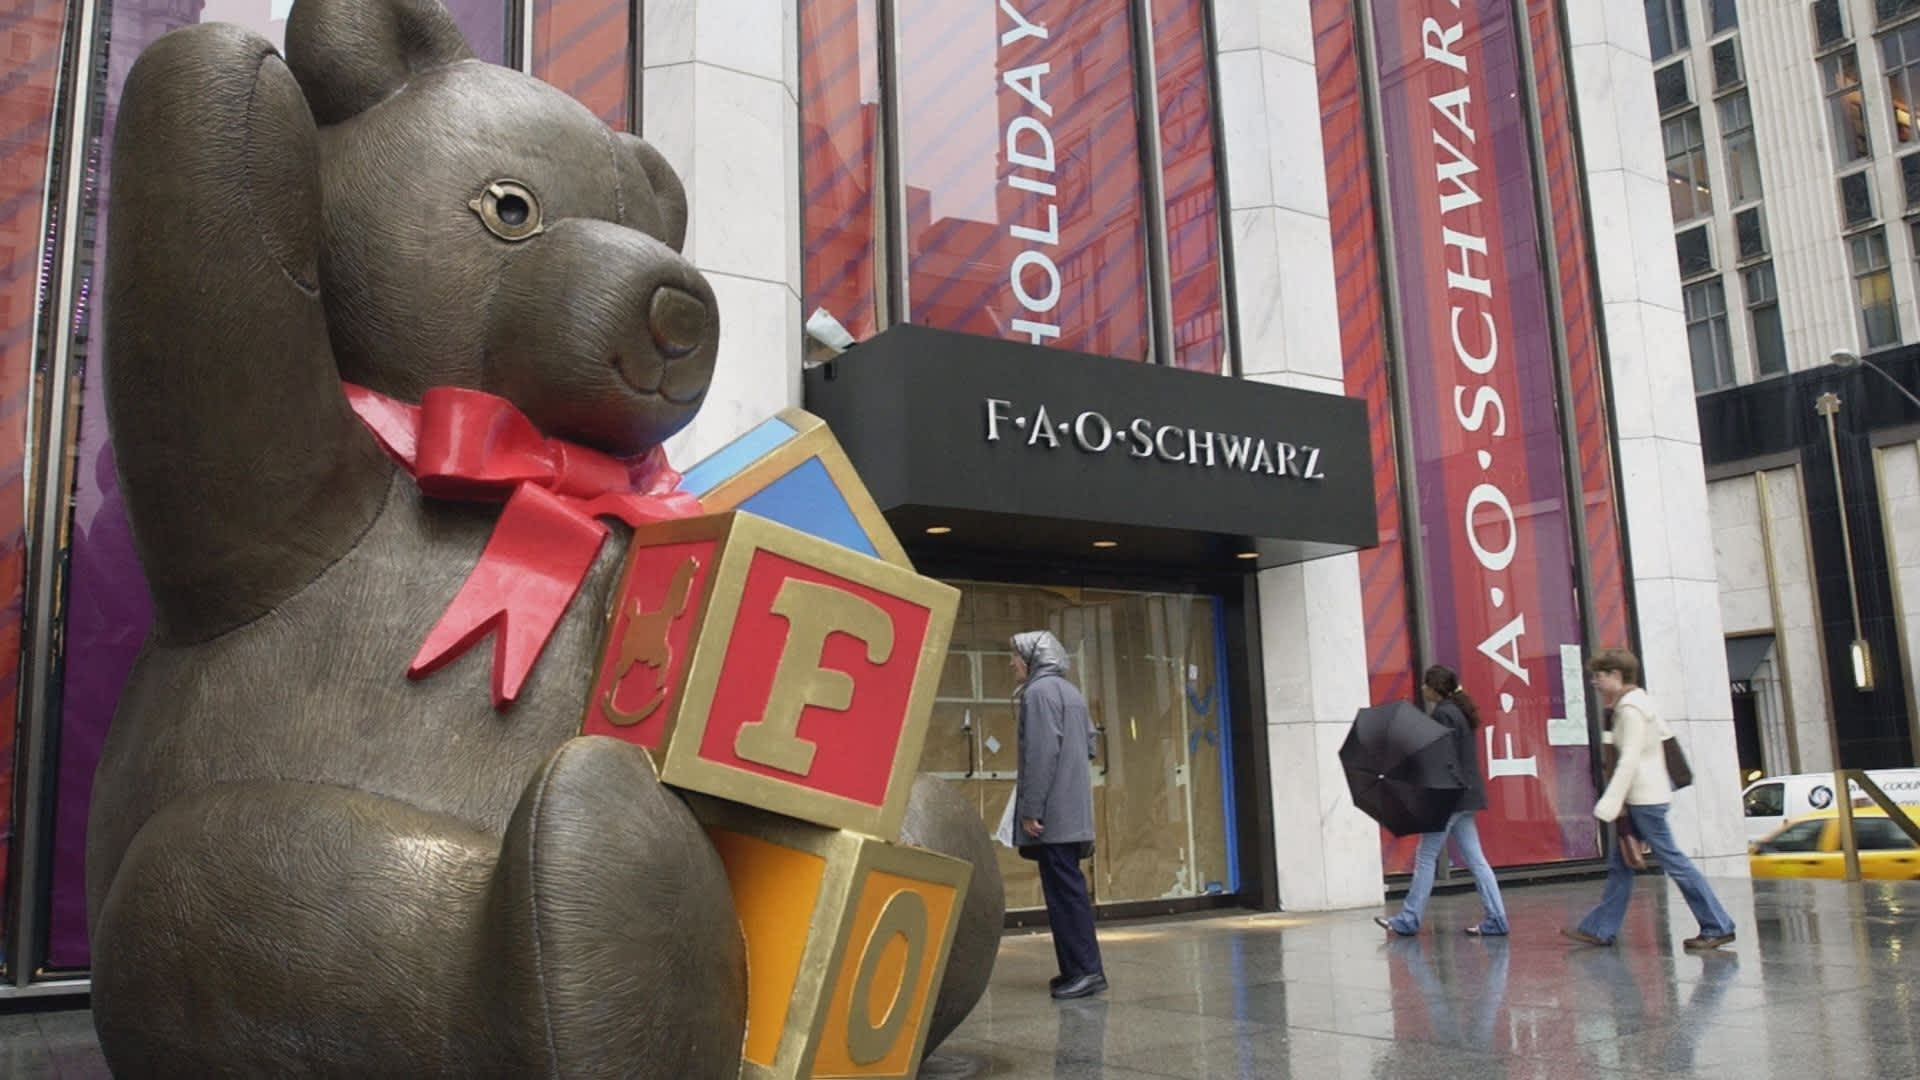 FAO Schwarz is back in New York, here's what its new store